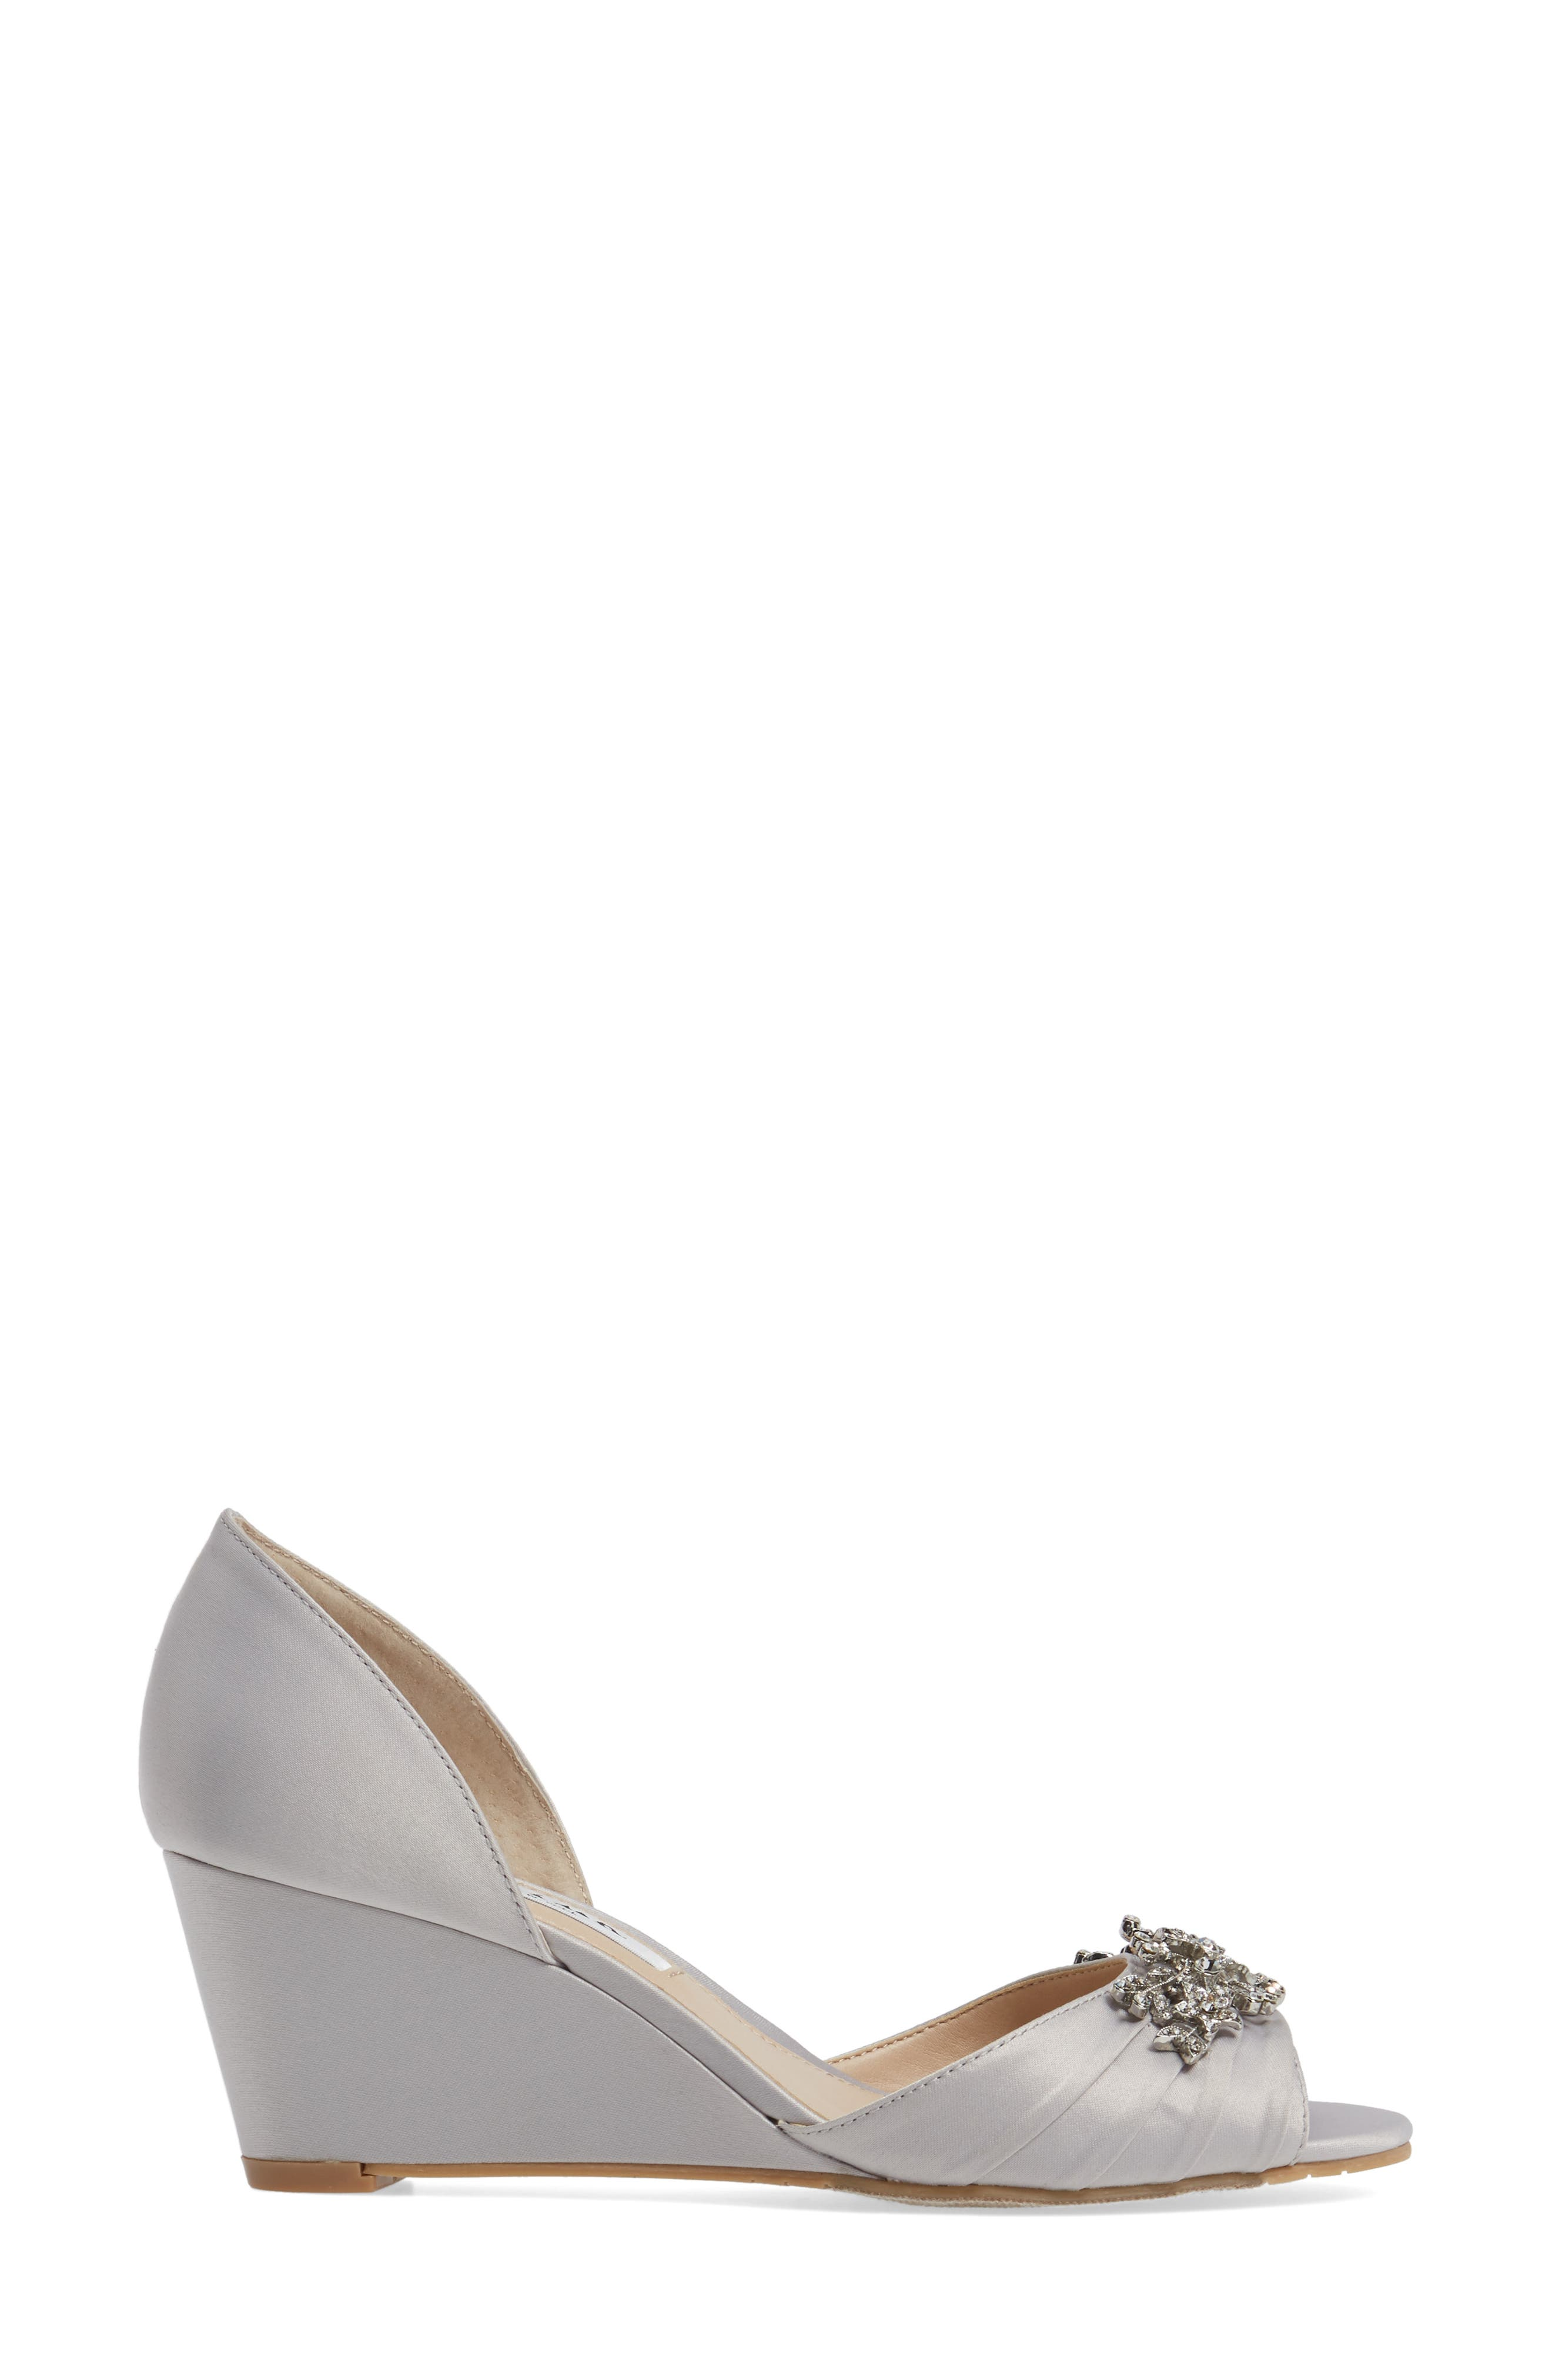 Emiko d'Orsay Wedge Pump,                             Alternate thumbnail 3, color,                             SILVER SATIN